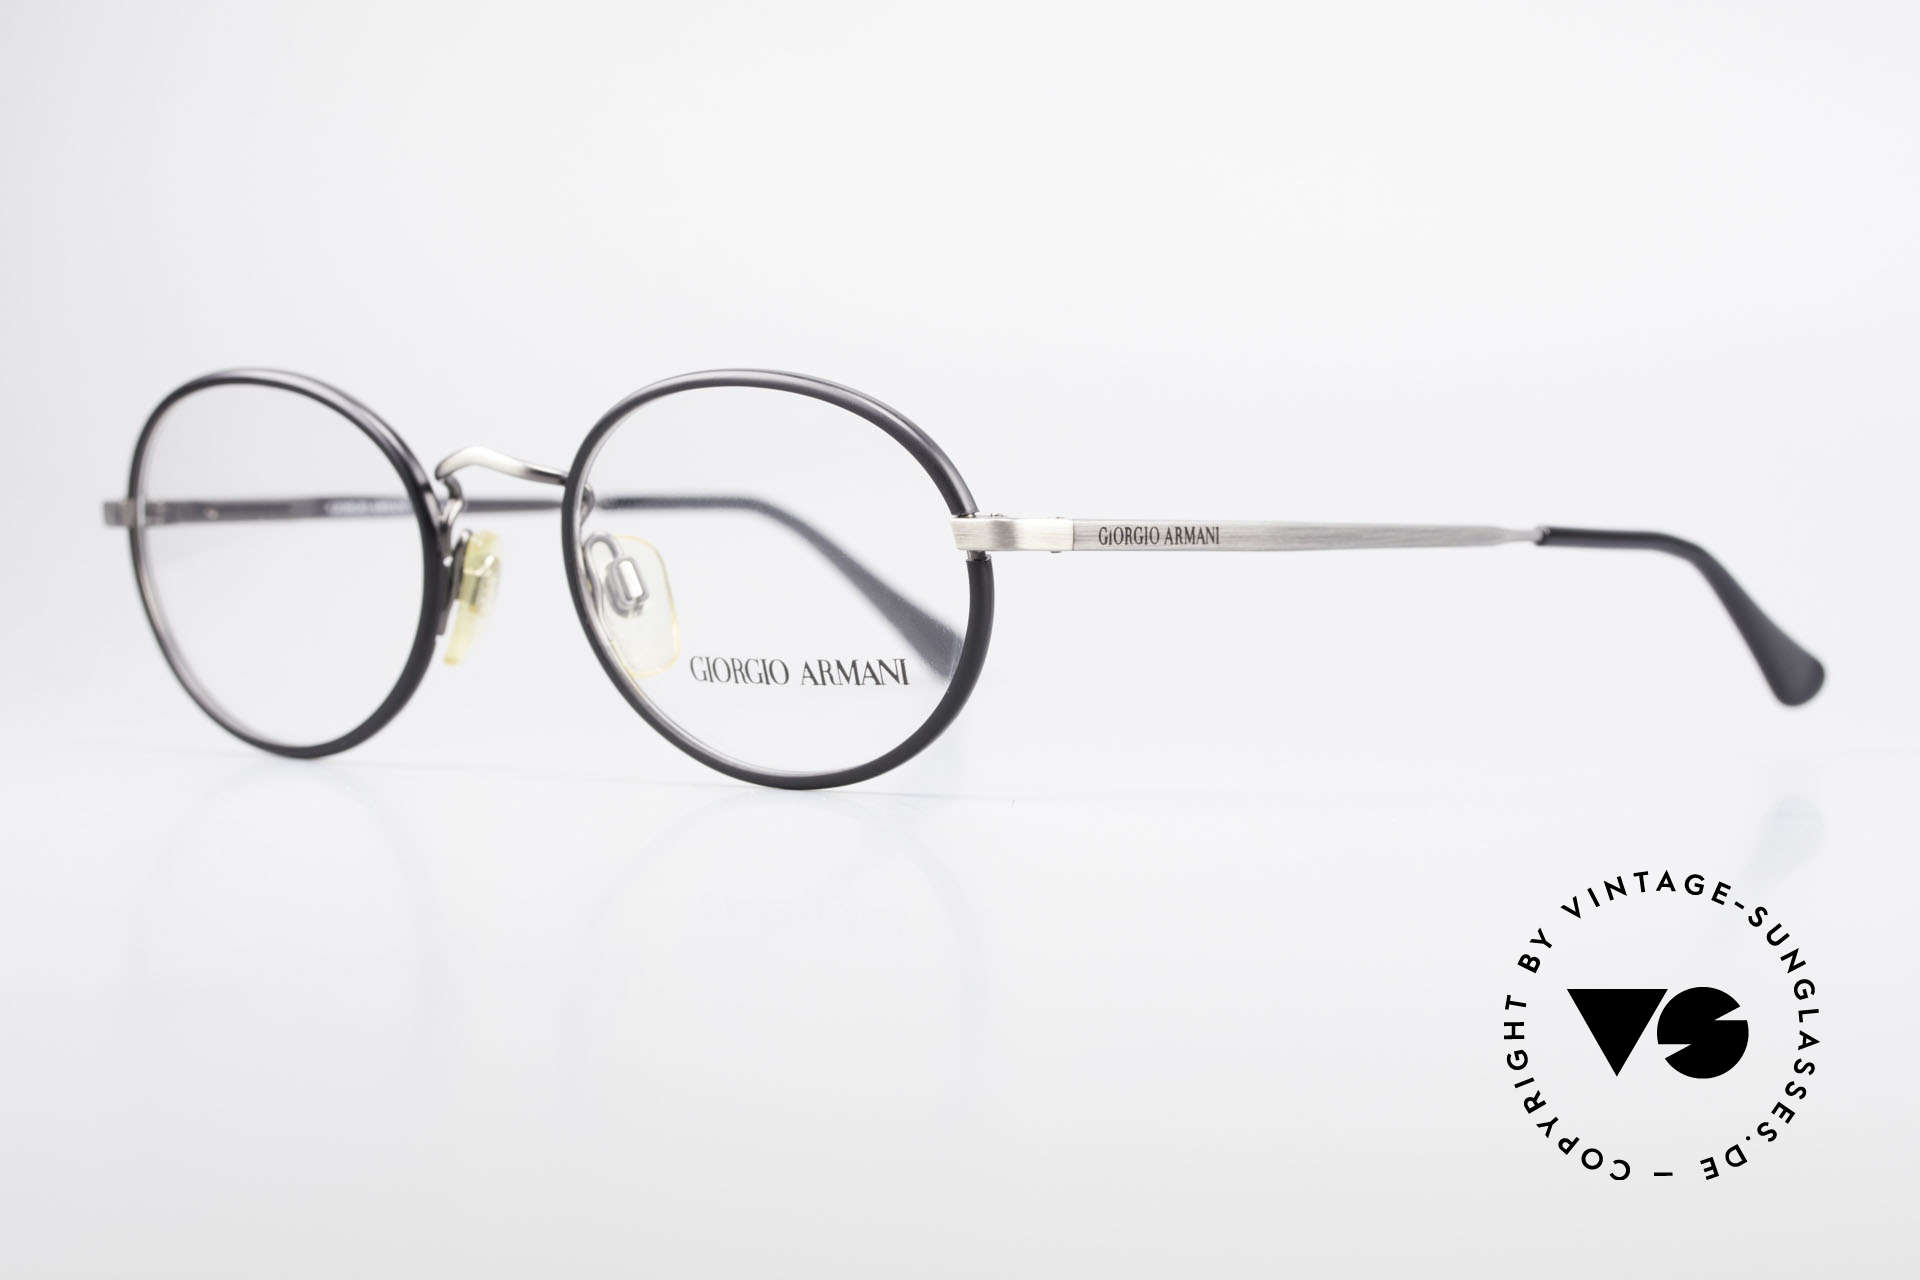 Giorgio Armani 235 Oval Vintage 80's Eyeglasses, 'antique metal' finished frame + black windsor rings, Made for Men and Women